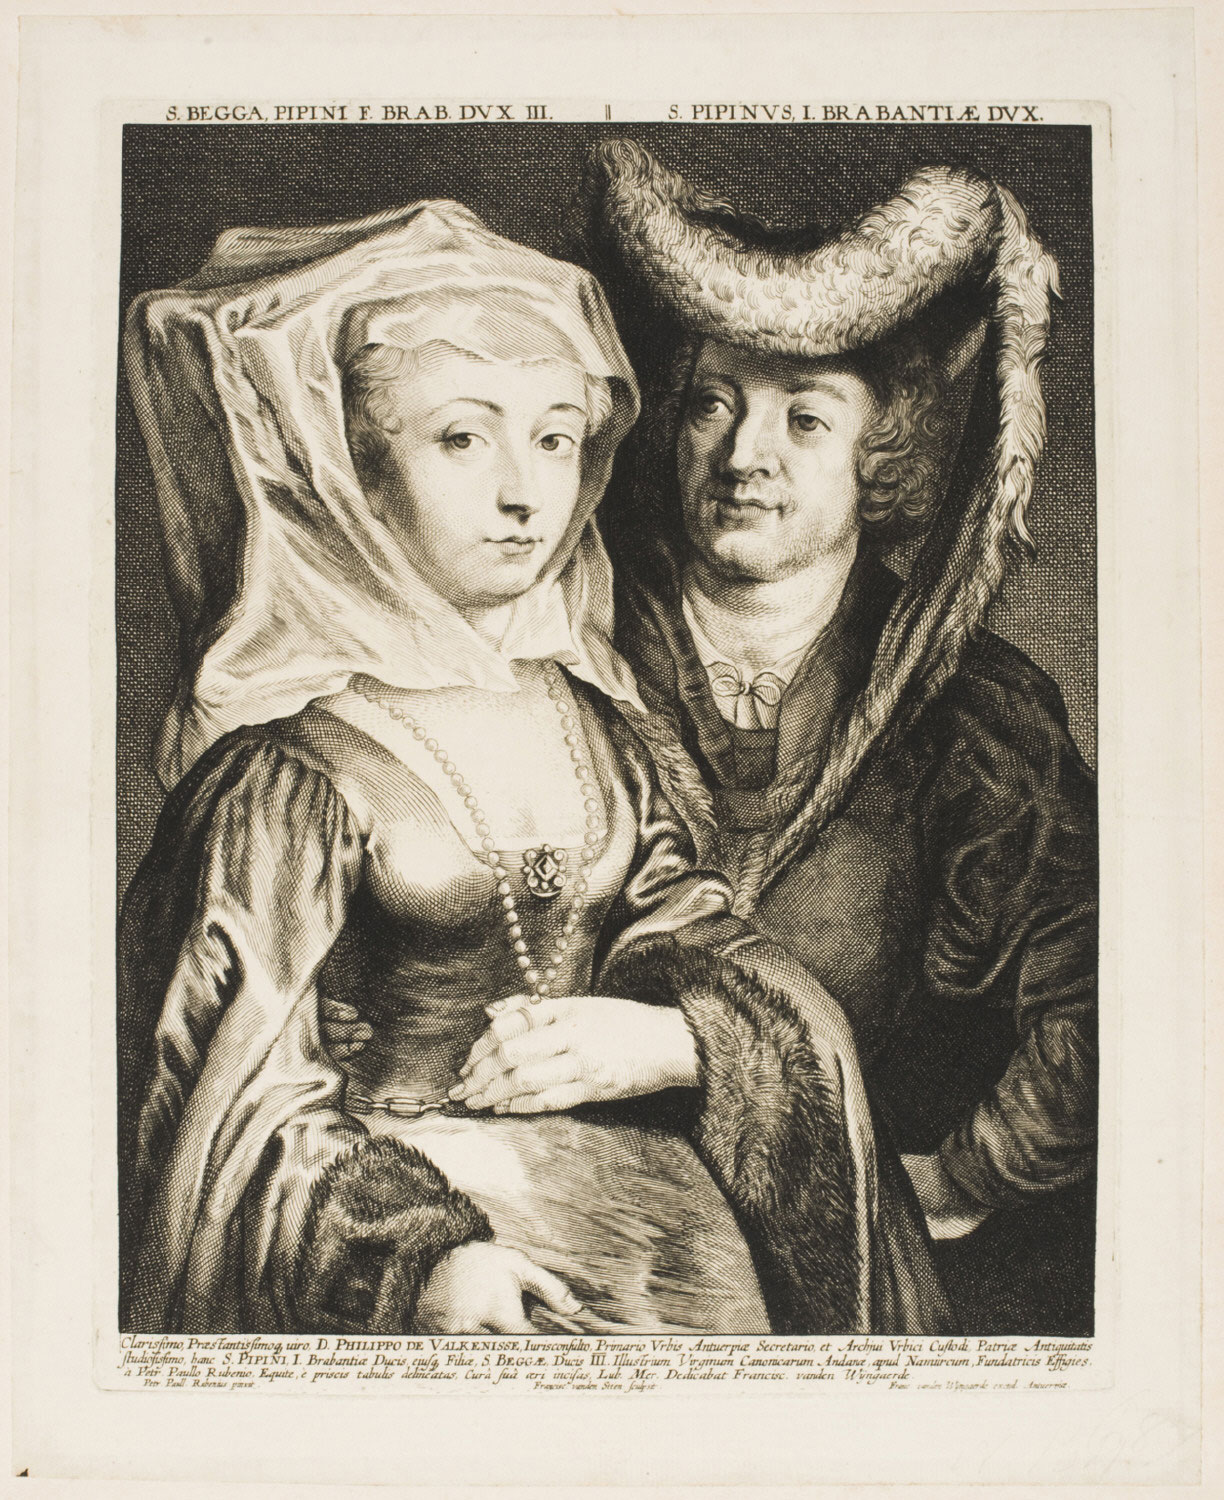 Portrait of Pepin I, First Duke of Brabant, and Bega, His Daughter